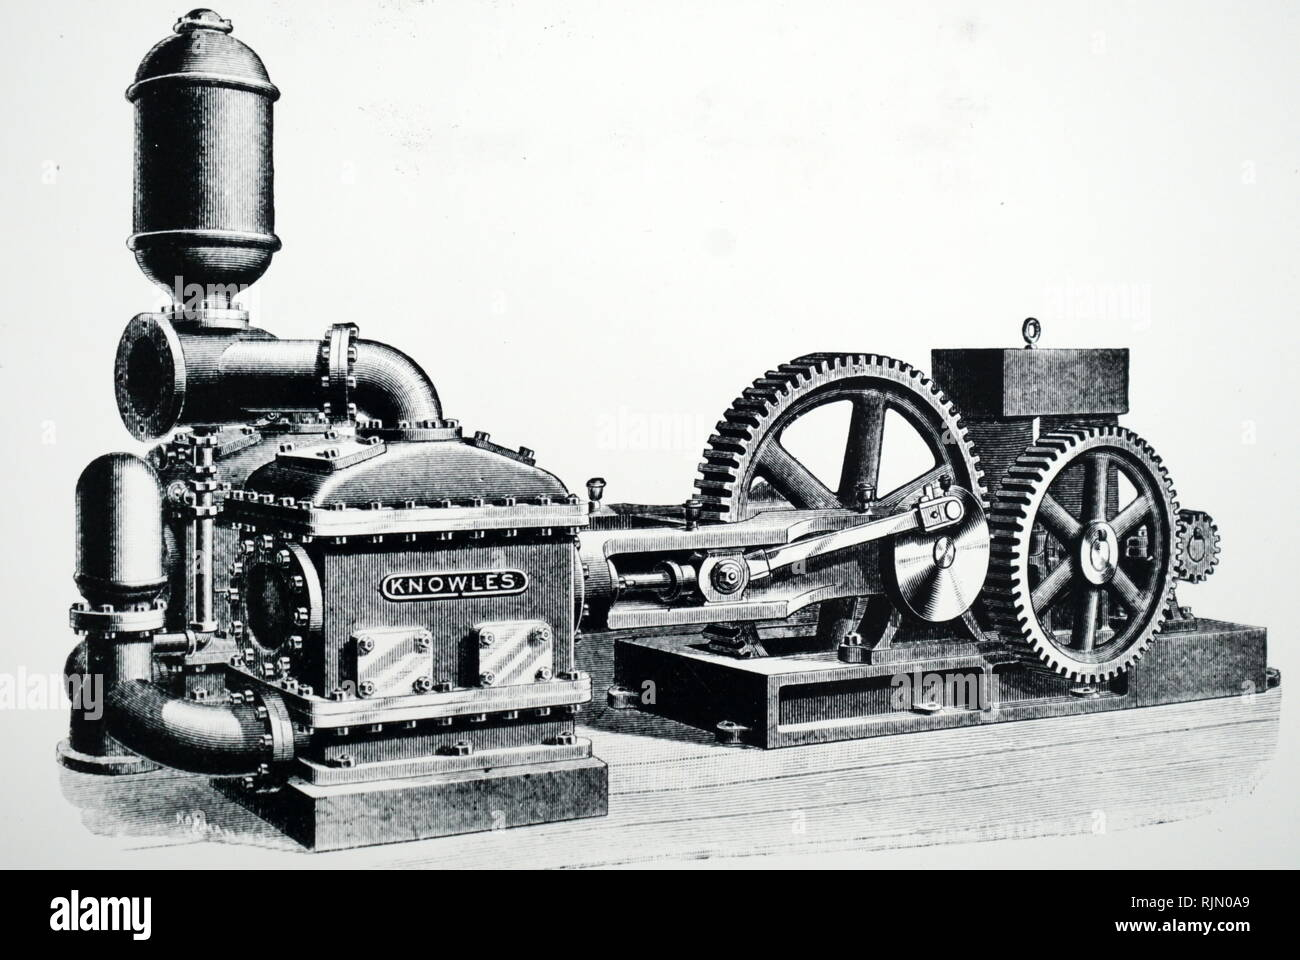 Illustration showing Duplex water works pumping engine powered by an Edison electric motor. New York, 1892. - Stock Image